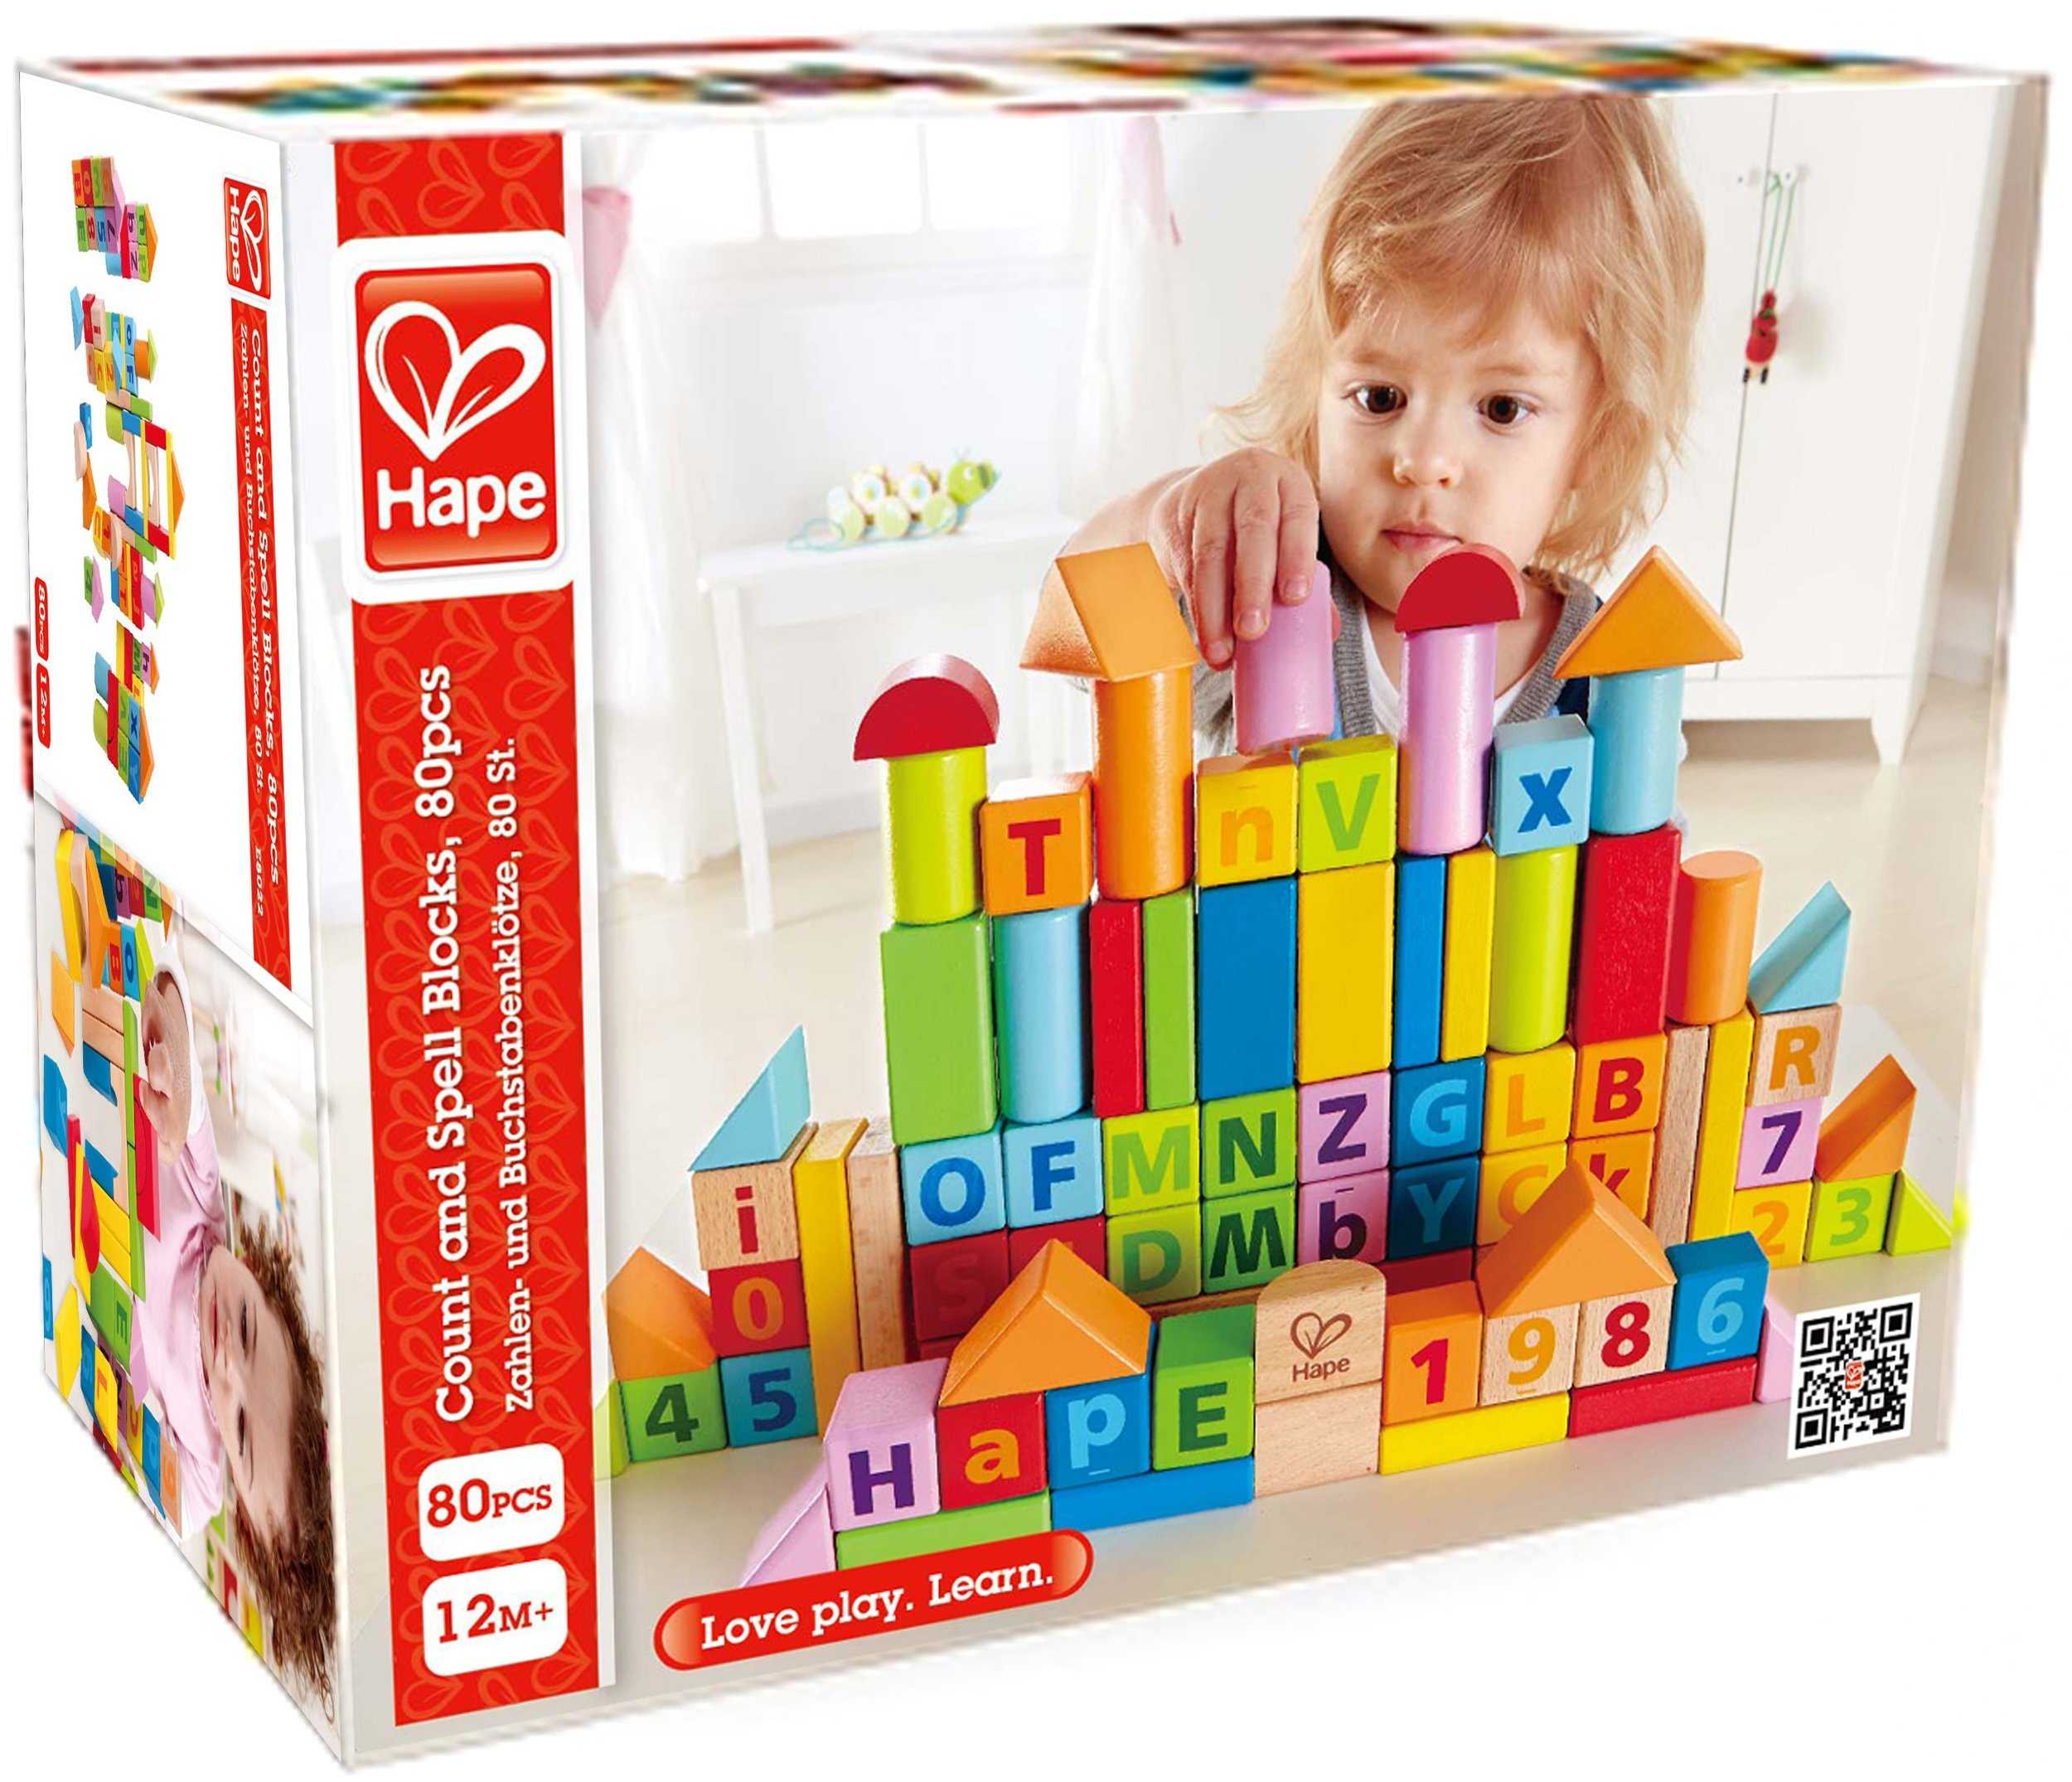 Hape LIMITED EDITION Solid Beech Wood Stacking Blocks with Carrying Sack